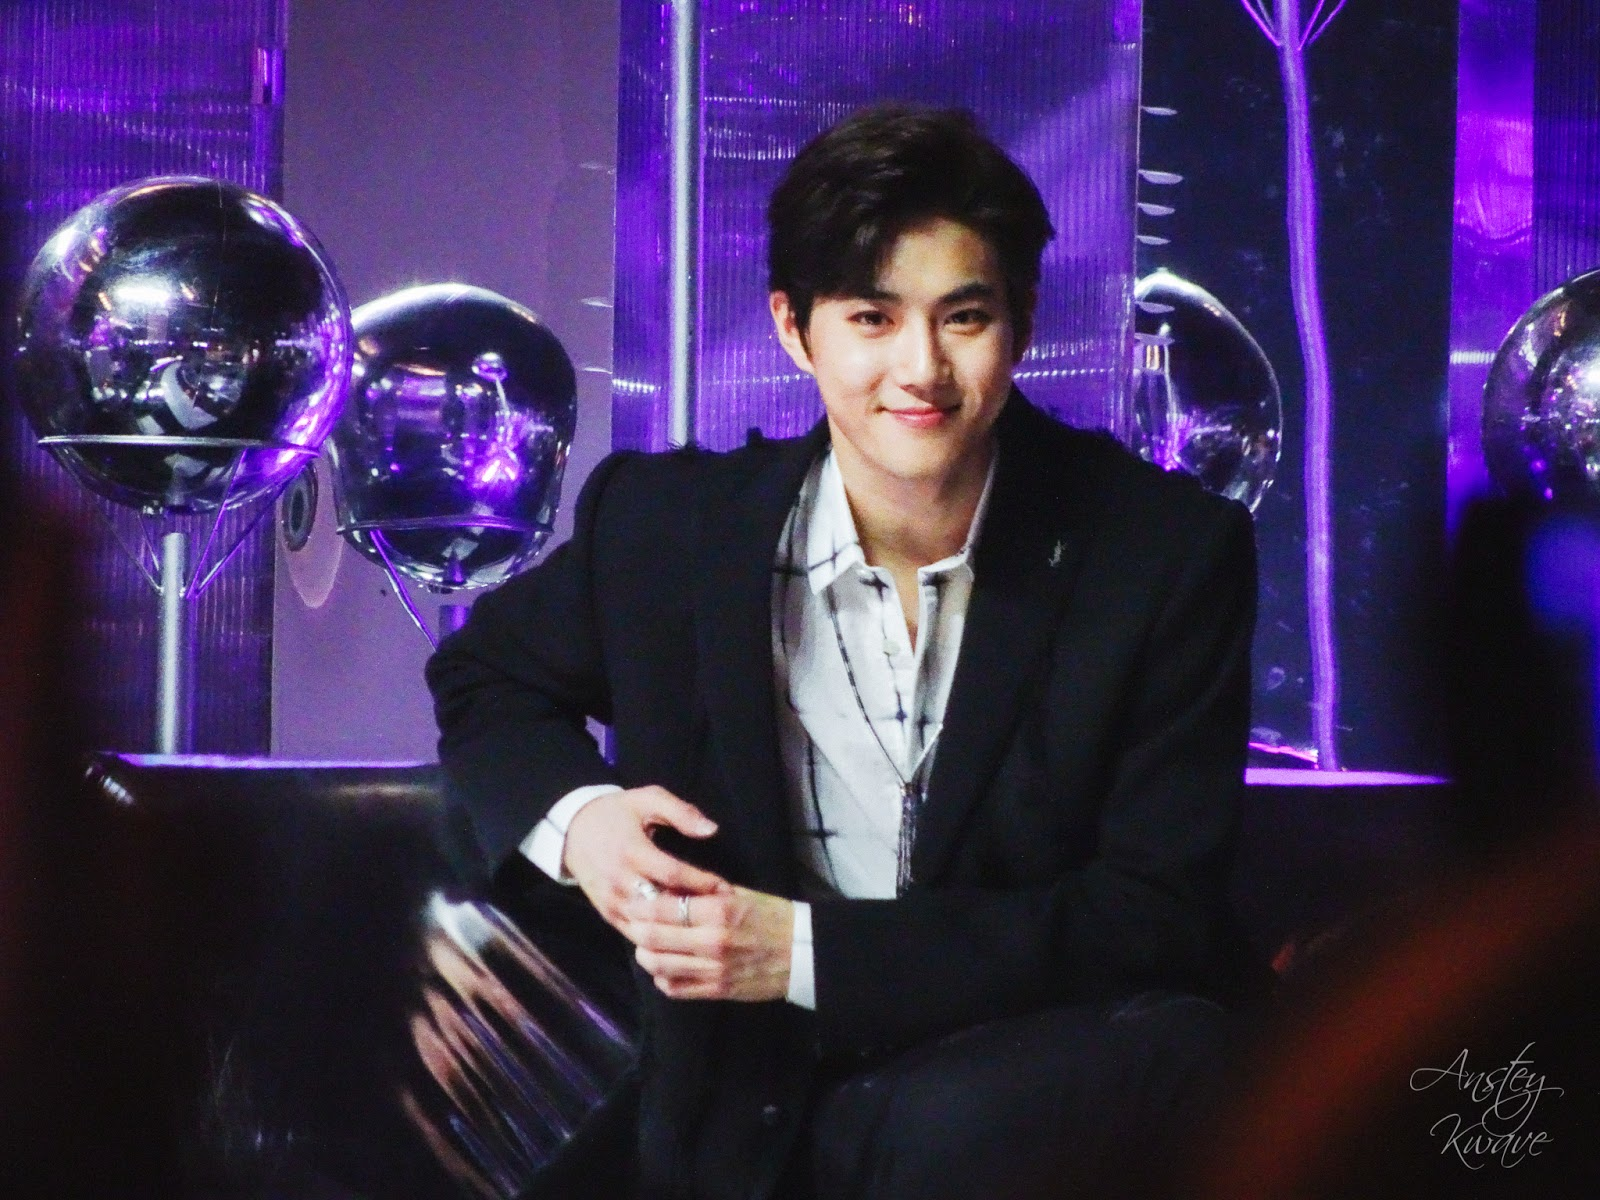 Suho, member of famous Korean k-pop boy band at Melon Music Awards (MMA) 2017 in Seoul, South Korea